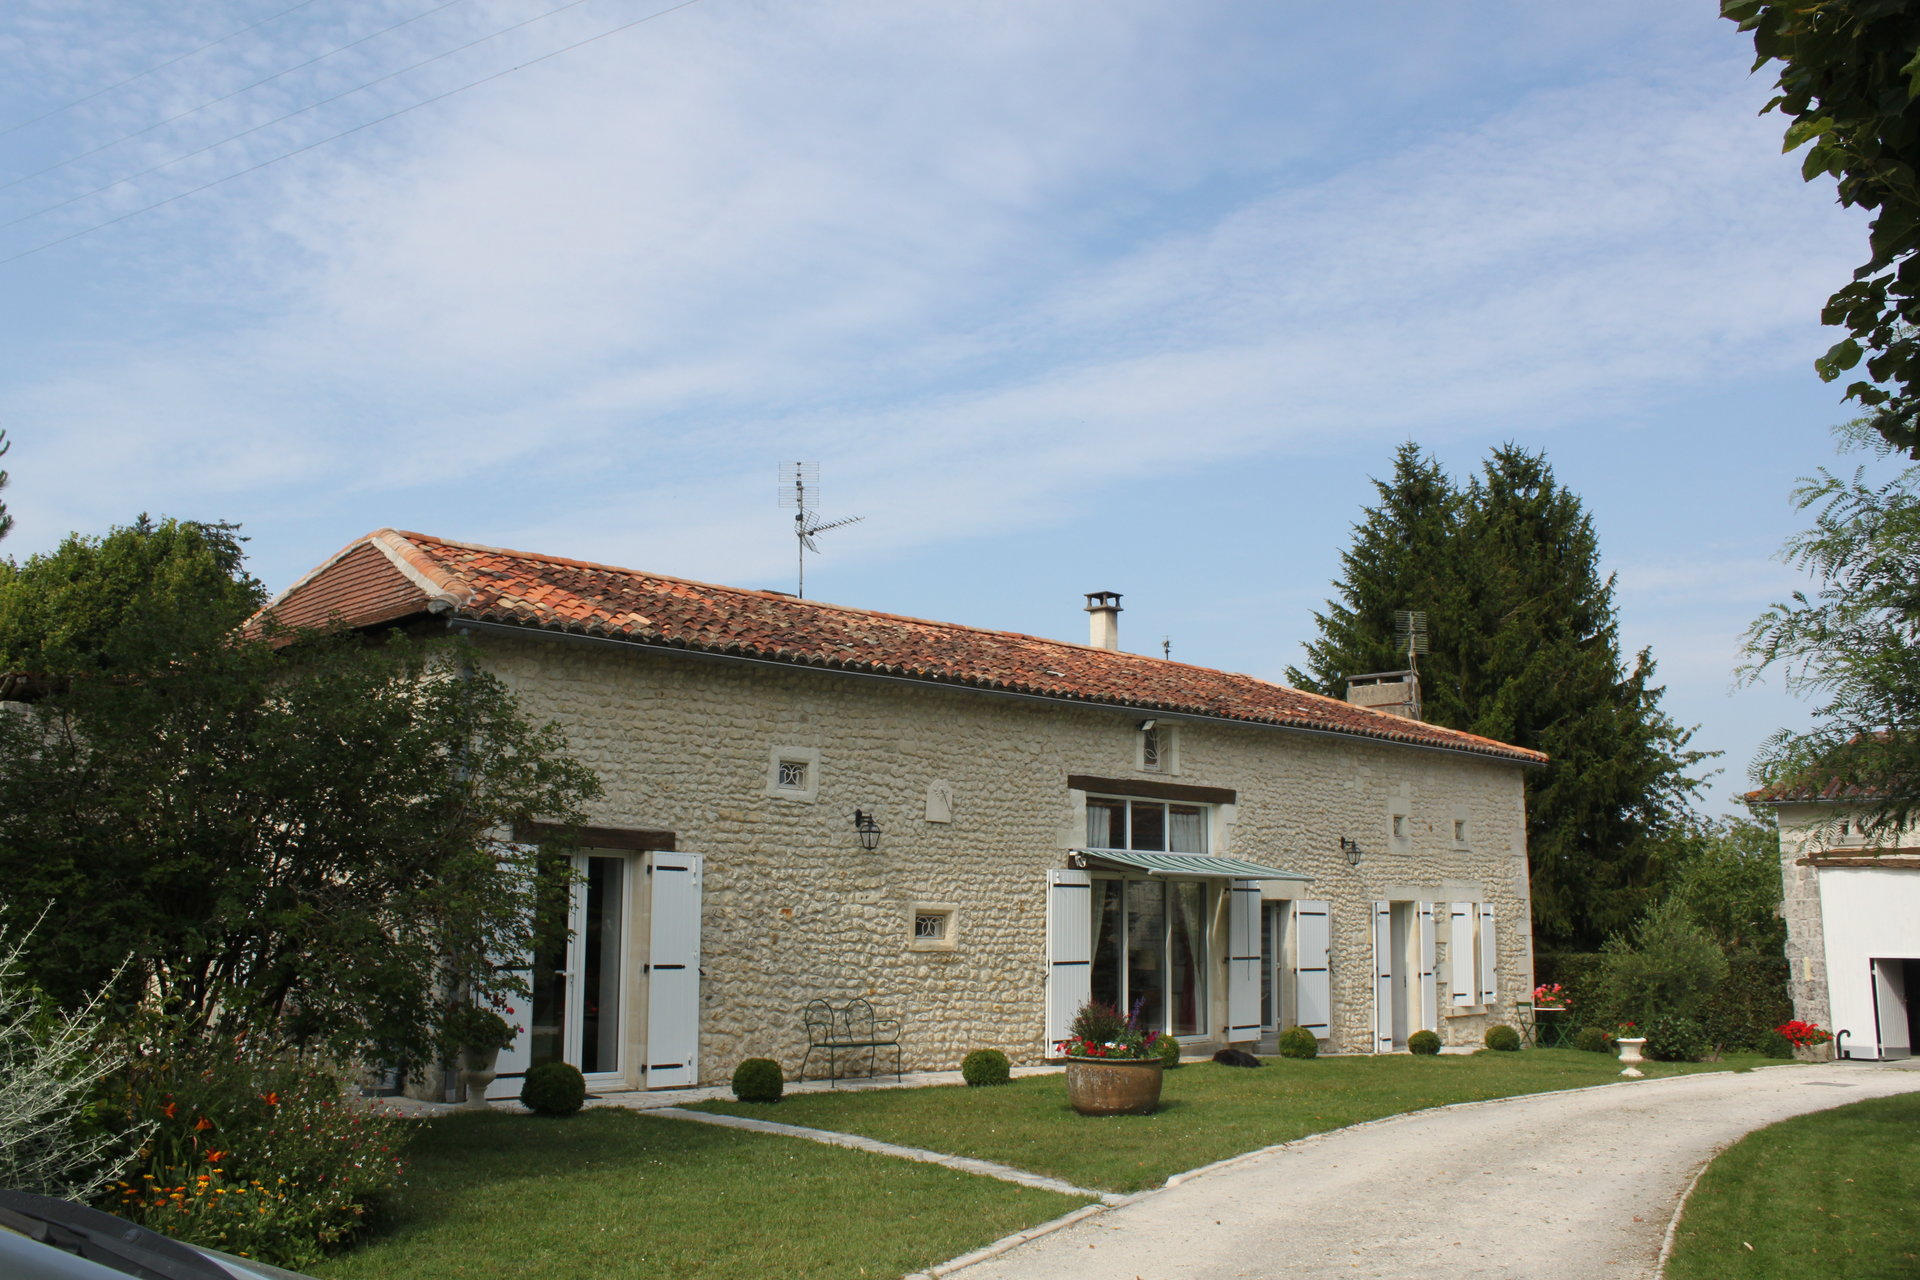 A delightful longere style stone house set in pretty enclosed gardens with outbuildings